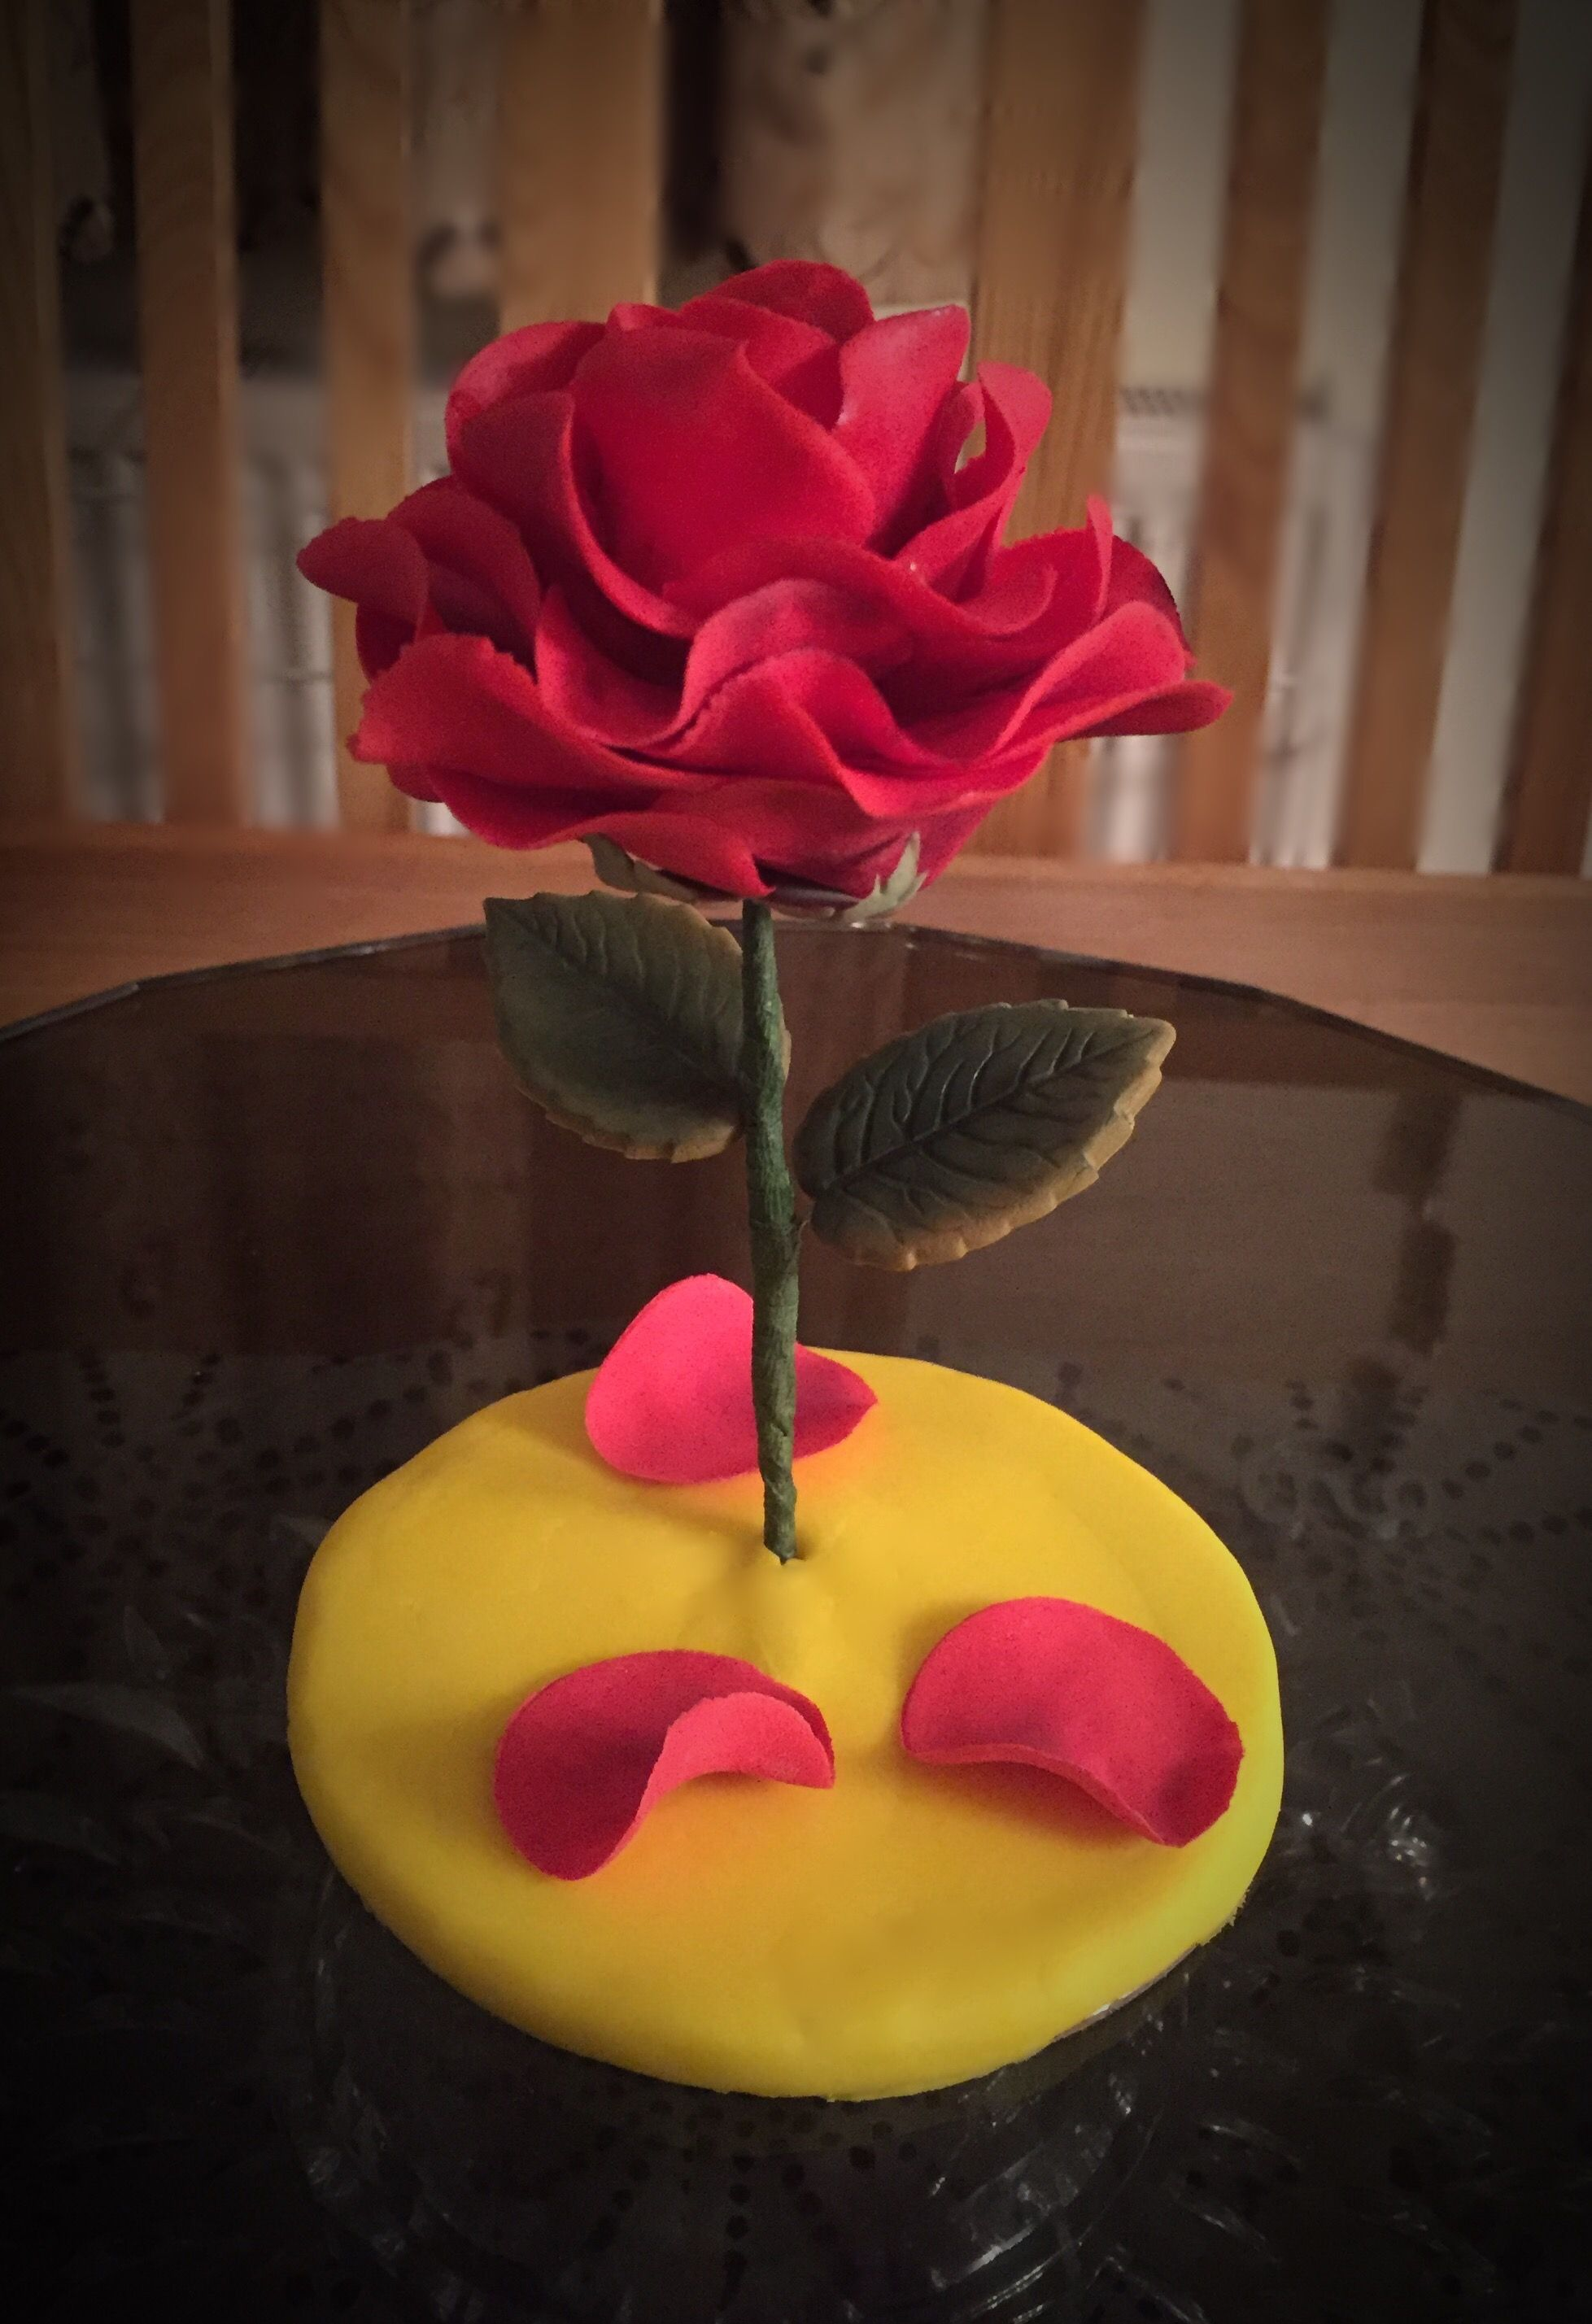 Beauty and the beast rose cake topper. A tale as old as ...